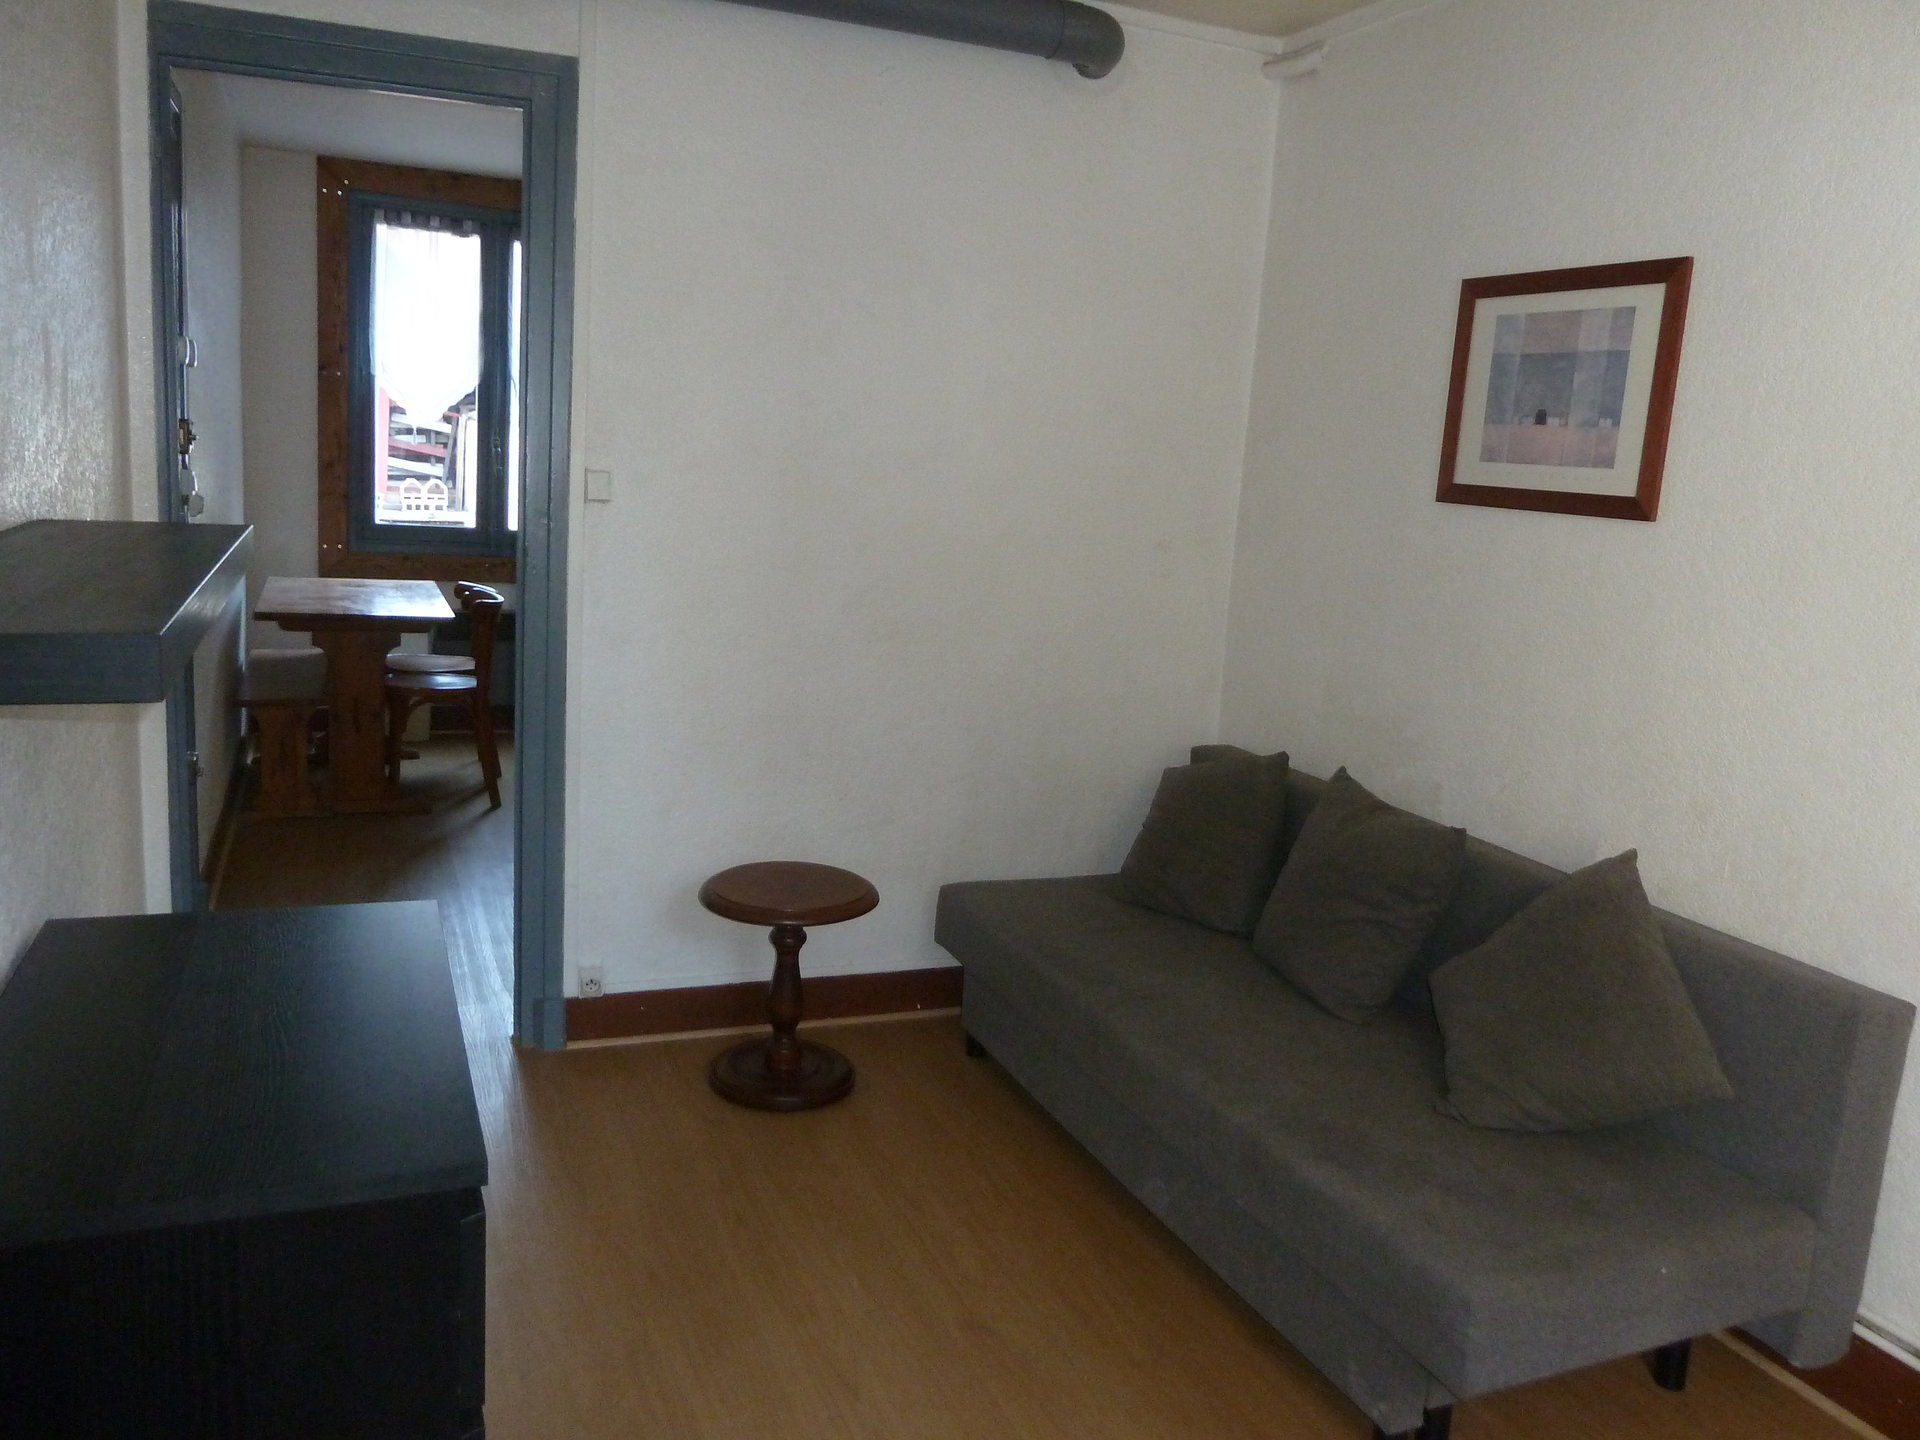 Location Appartement - Le Bourg-d'Oisans